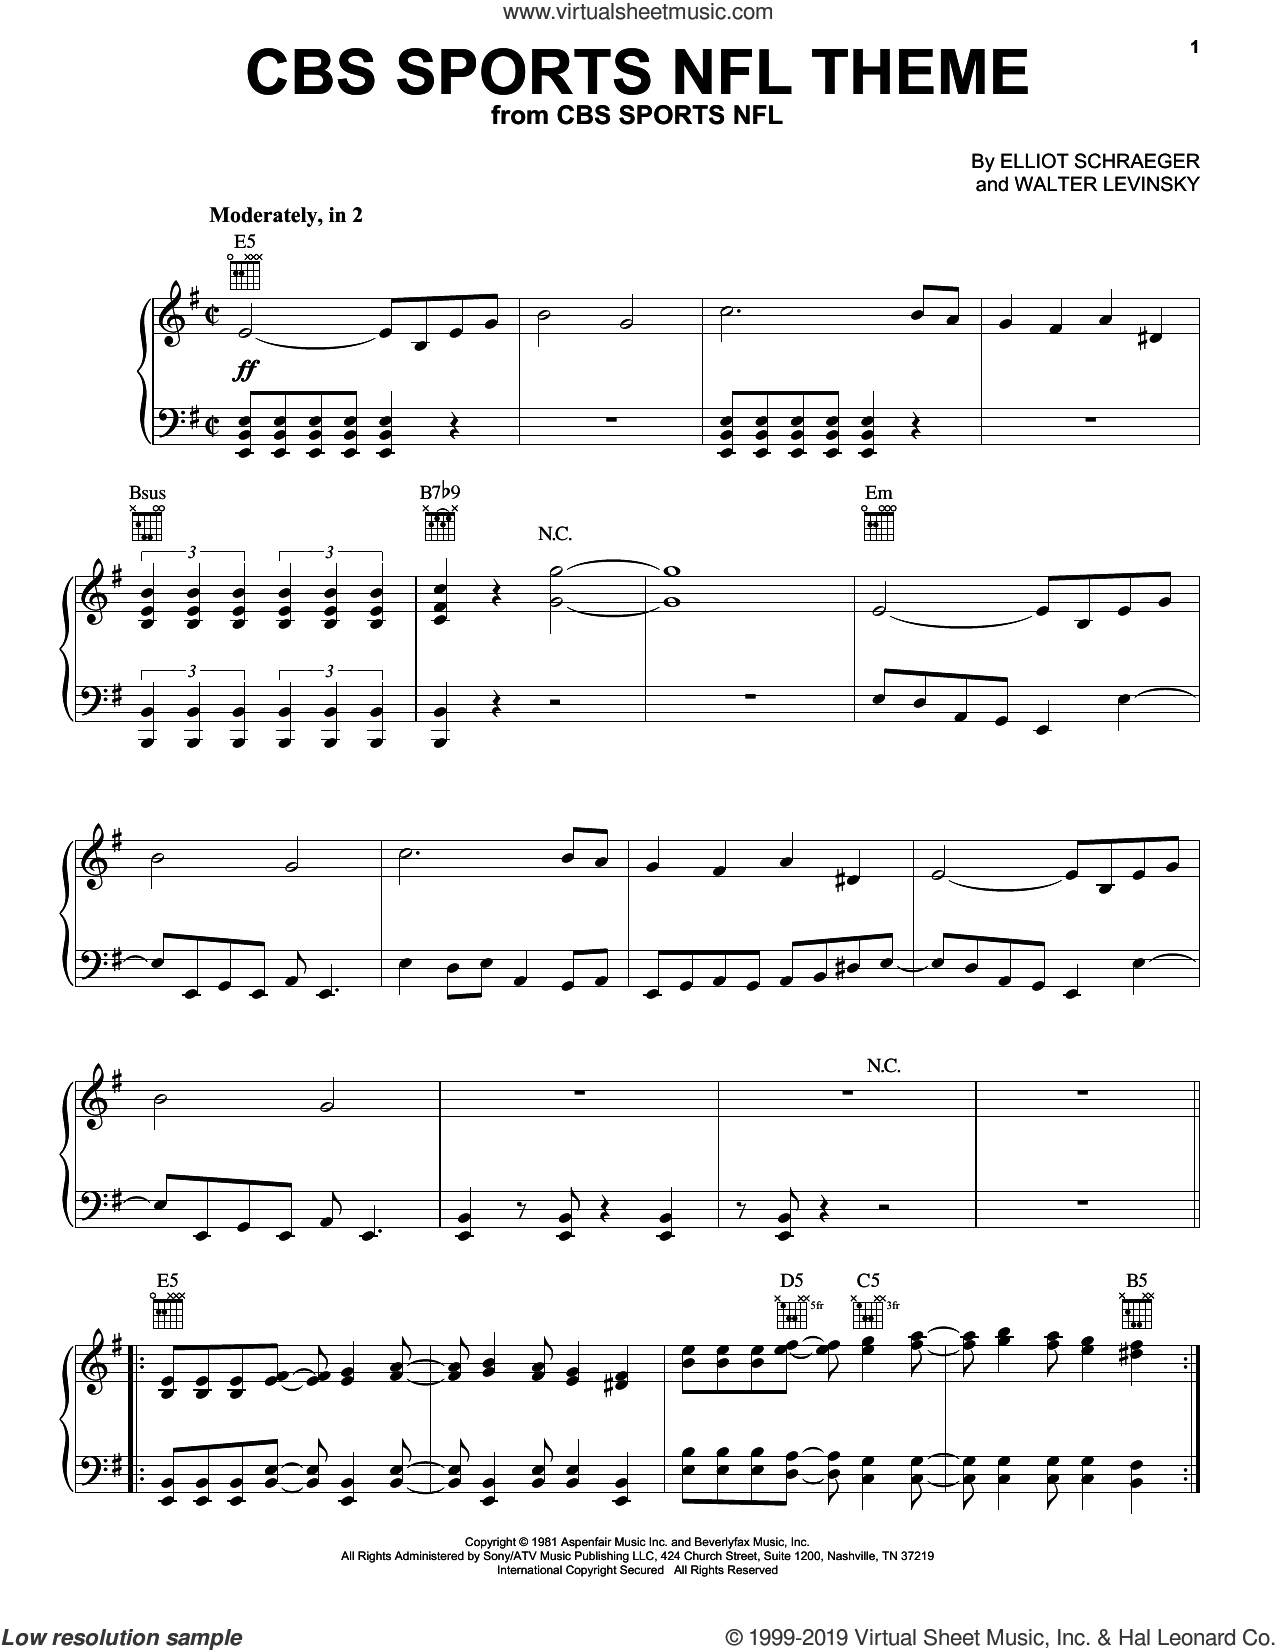 CBS Sports NFL Theme sheet music for piano solo by Walter Levinsky and Elliot Schraeger, intermediate skill level